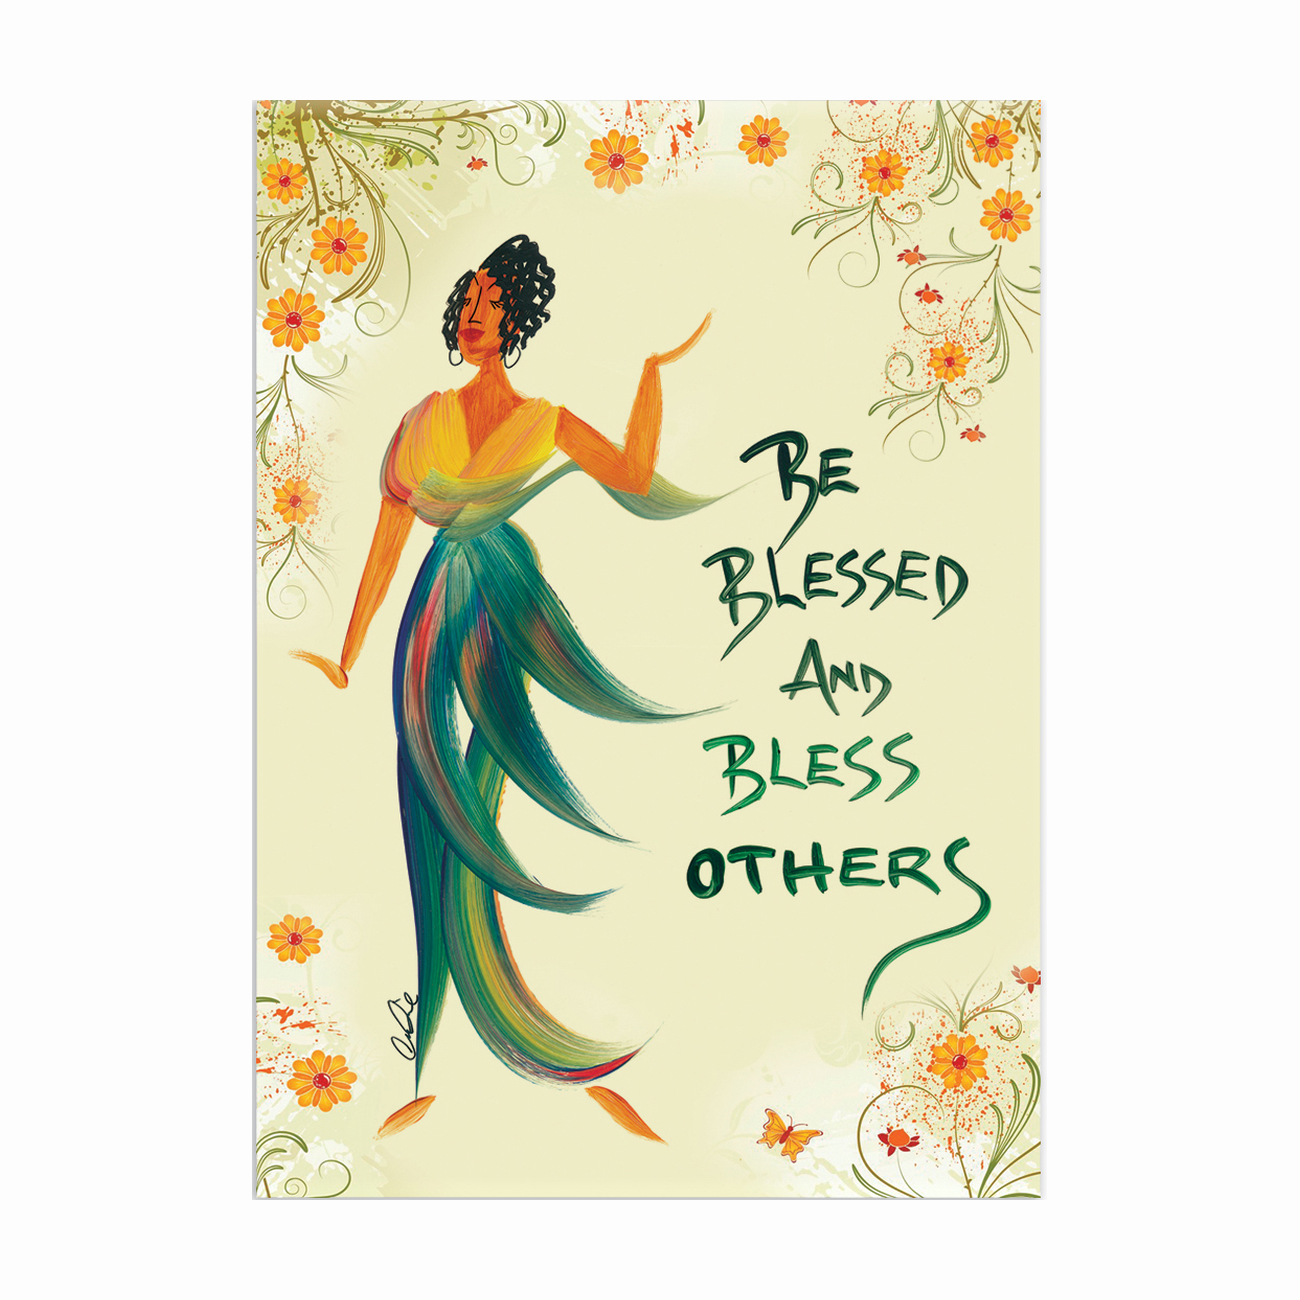 Be Blessed & Bless Others: African American Magnets by Cidne Wallace